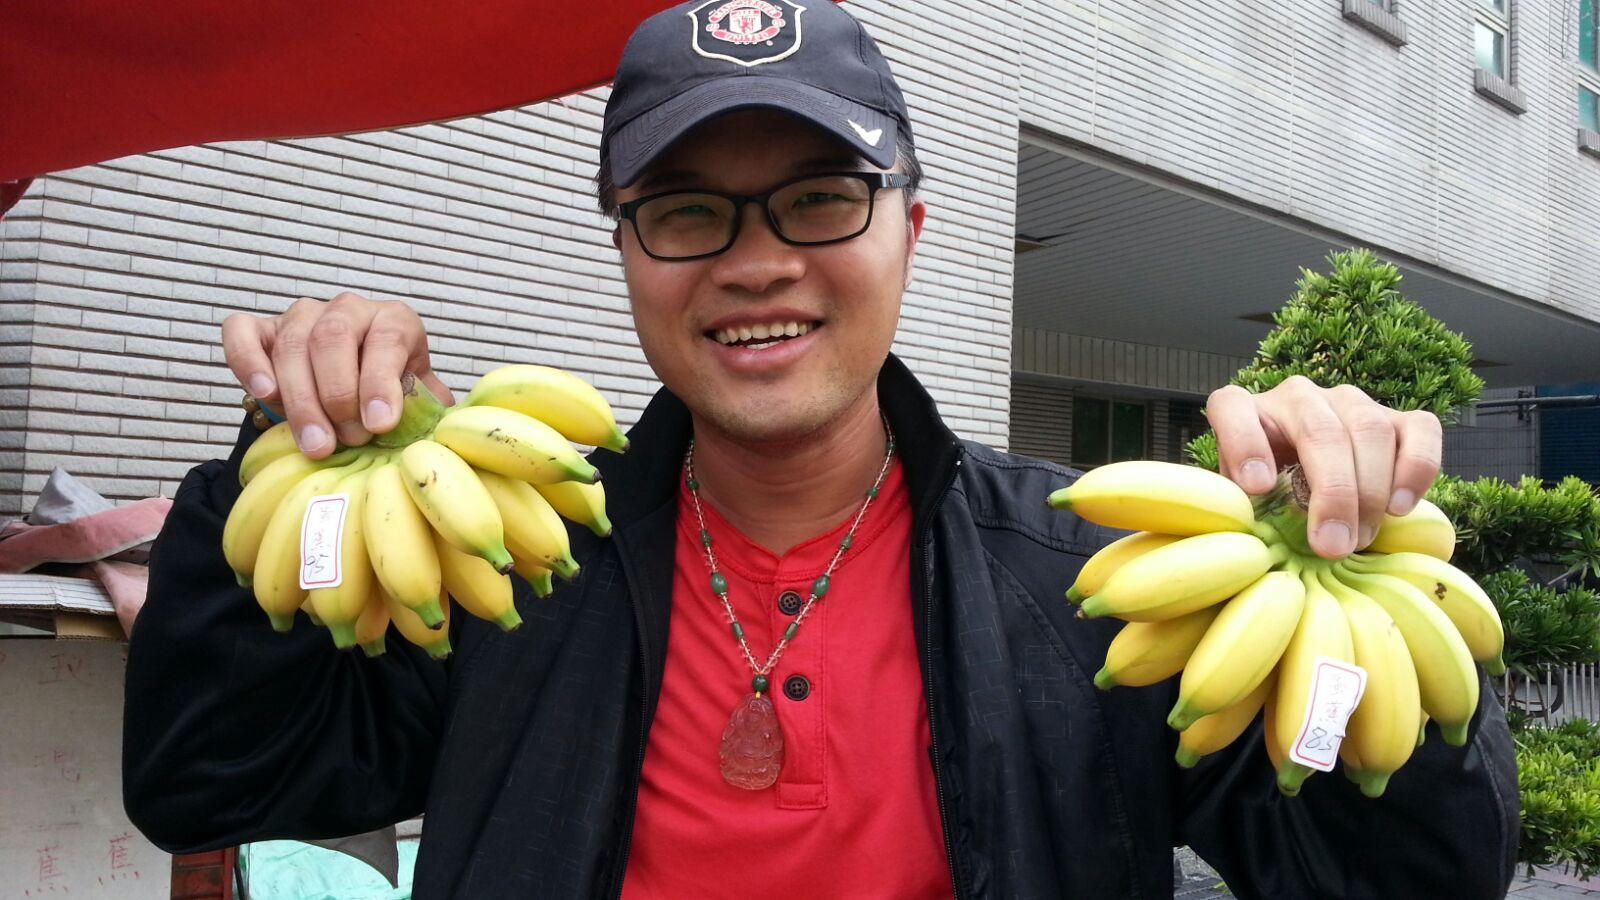 Jeff, an OWNRIDES driver, holding up two bunches of bananas while smiling